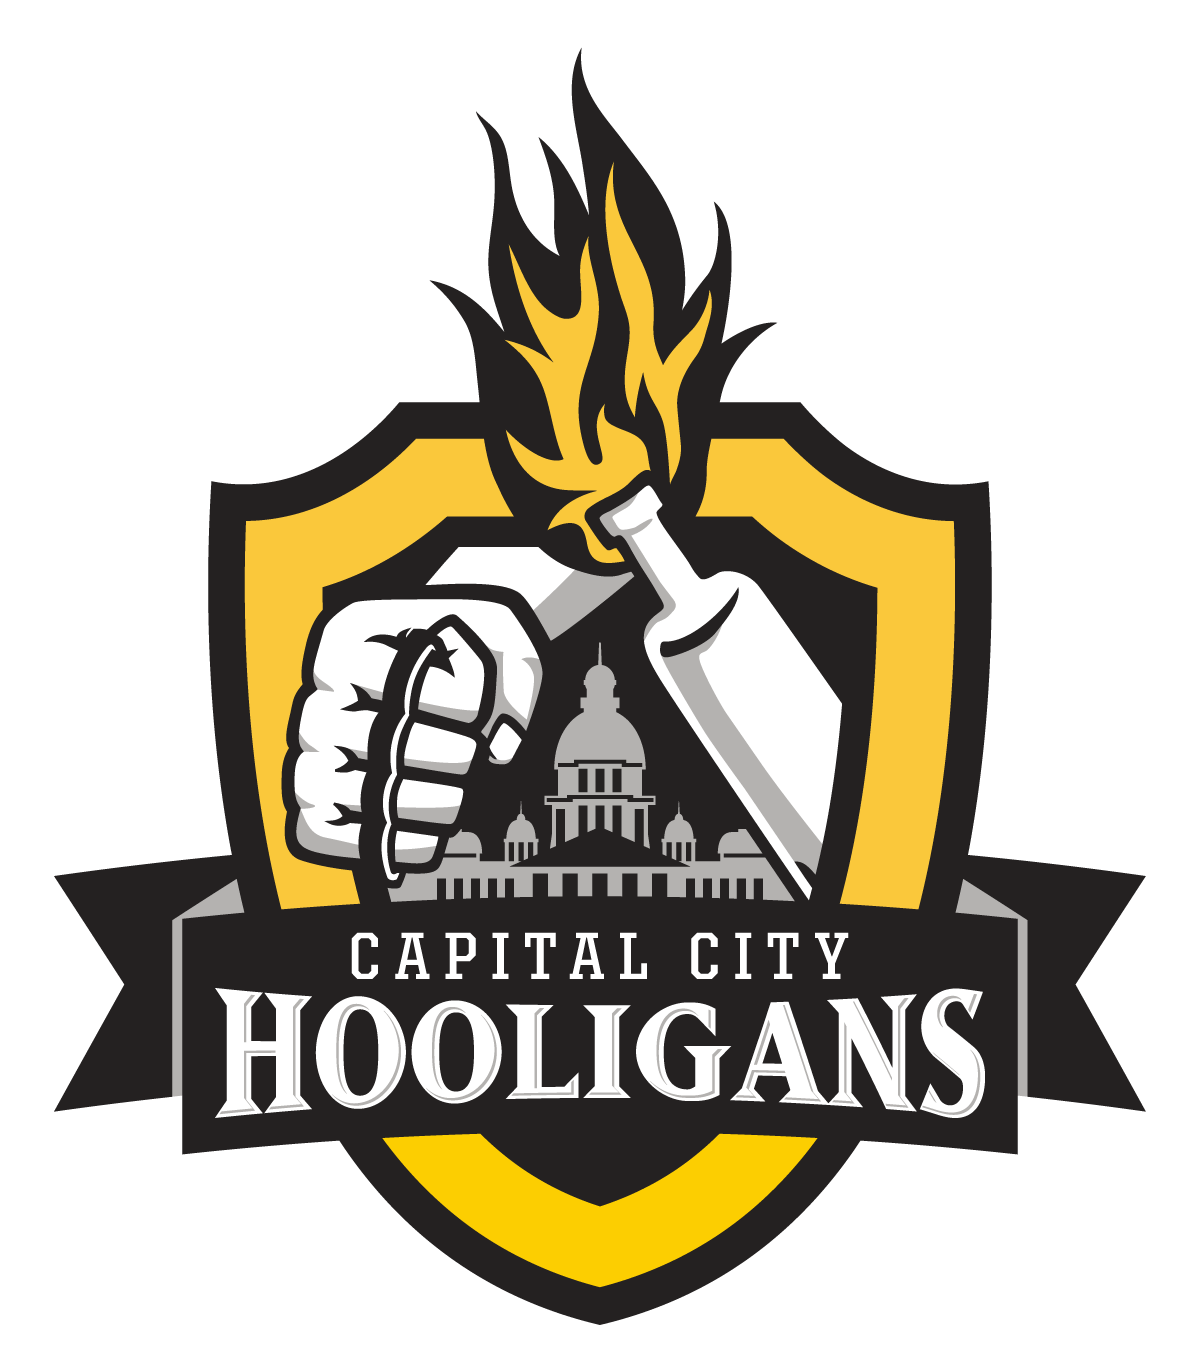 Capital City Hooligans